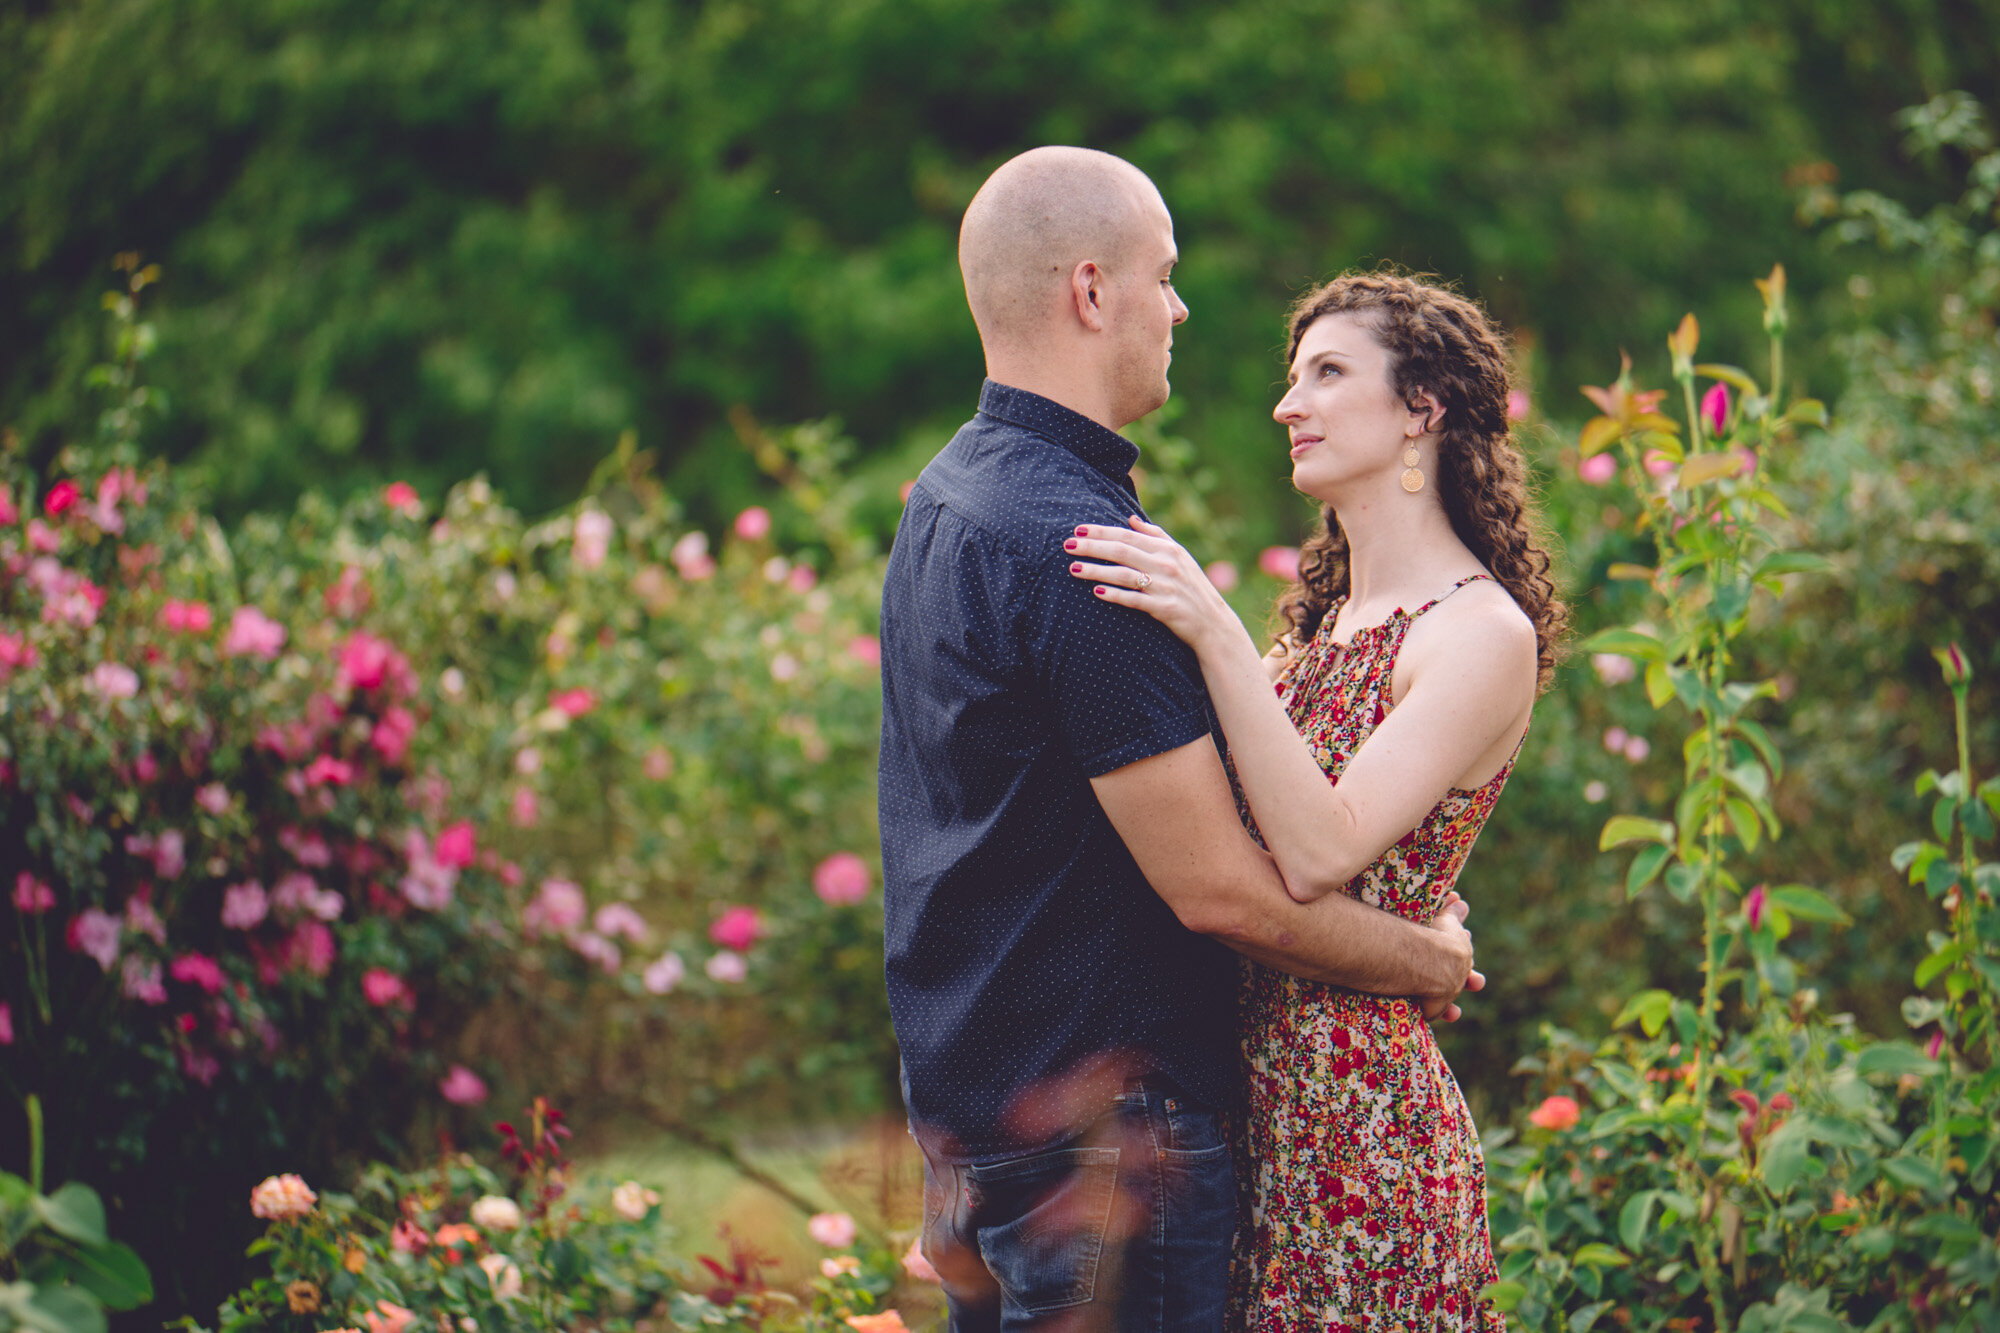 Bon Air Park Rose Garden Engagement Photos-14.jpg